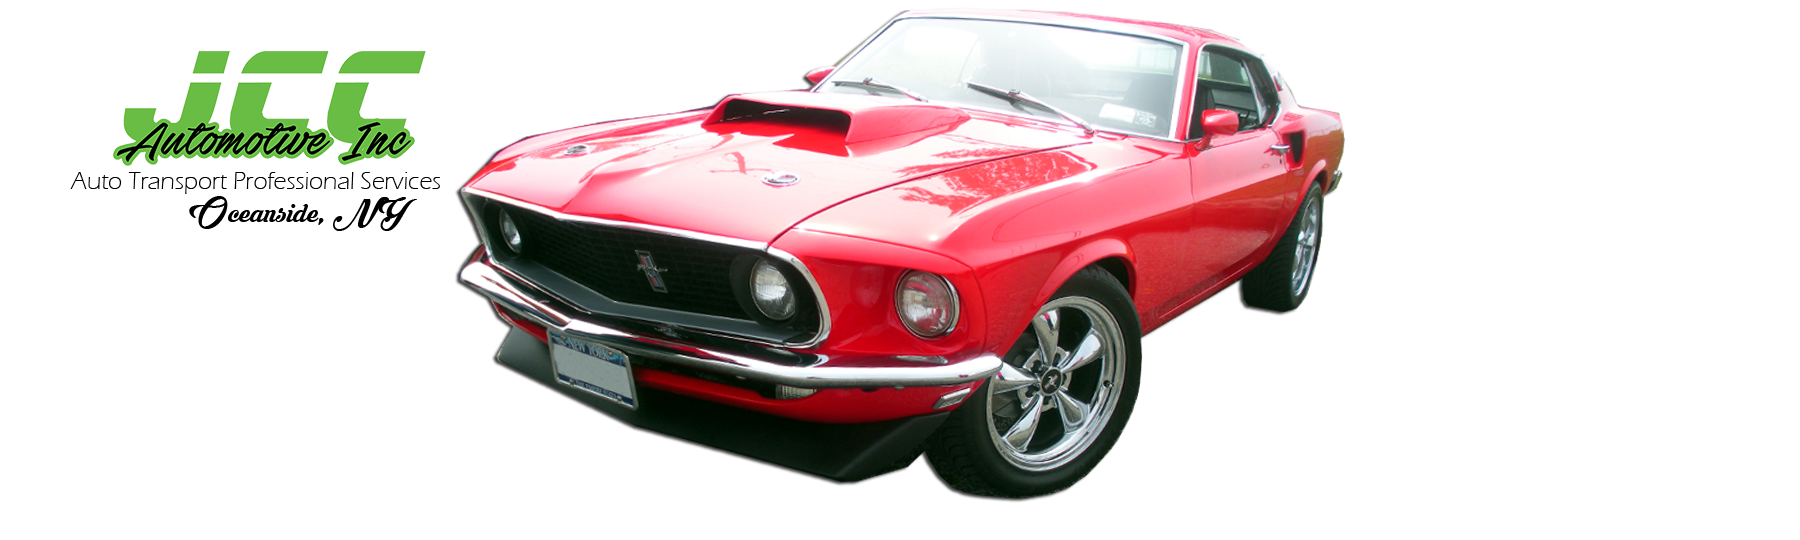 JCC Automotive Inc. | Classic Car Transport Professional Services, 3 New Street, Oceanside, Long Island, NY, 11572 | PHONE: 516-287-4189, FAX: 516-599-8206